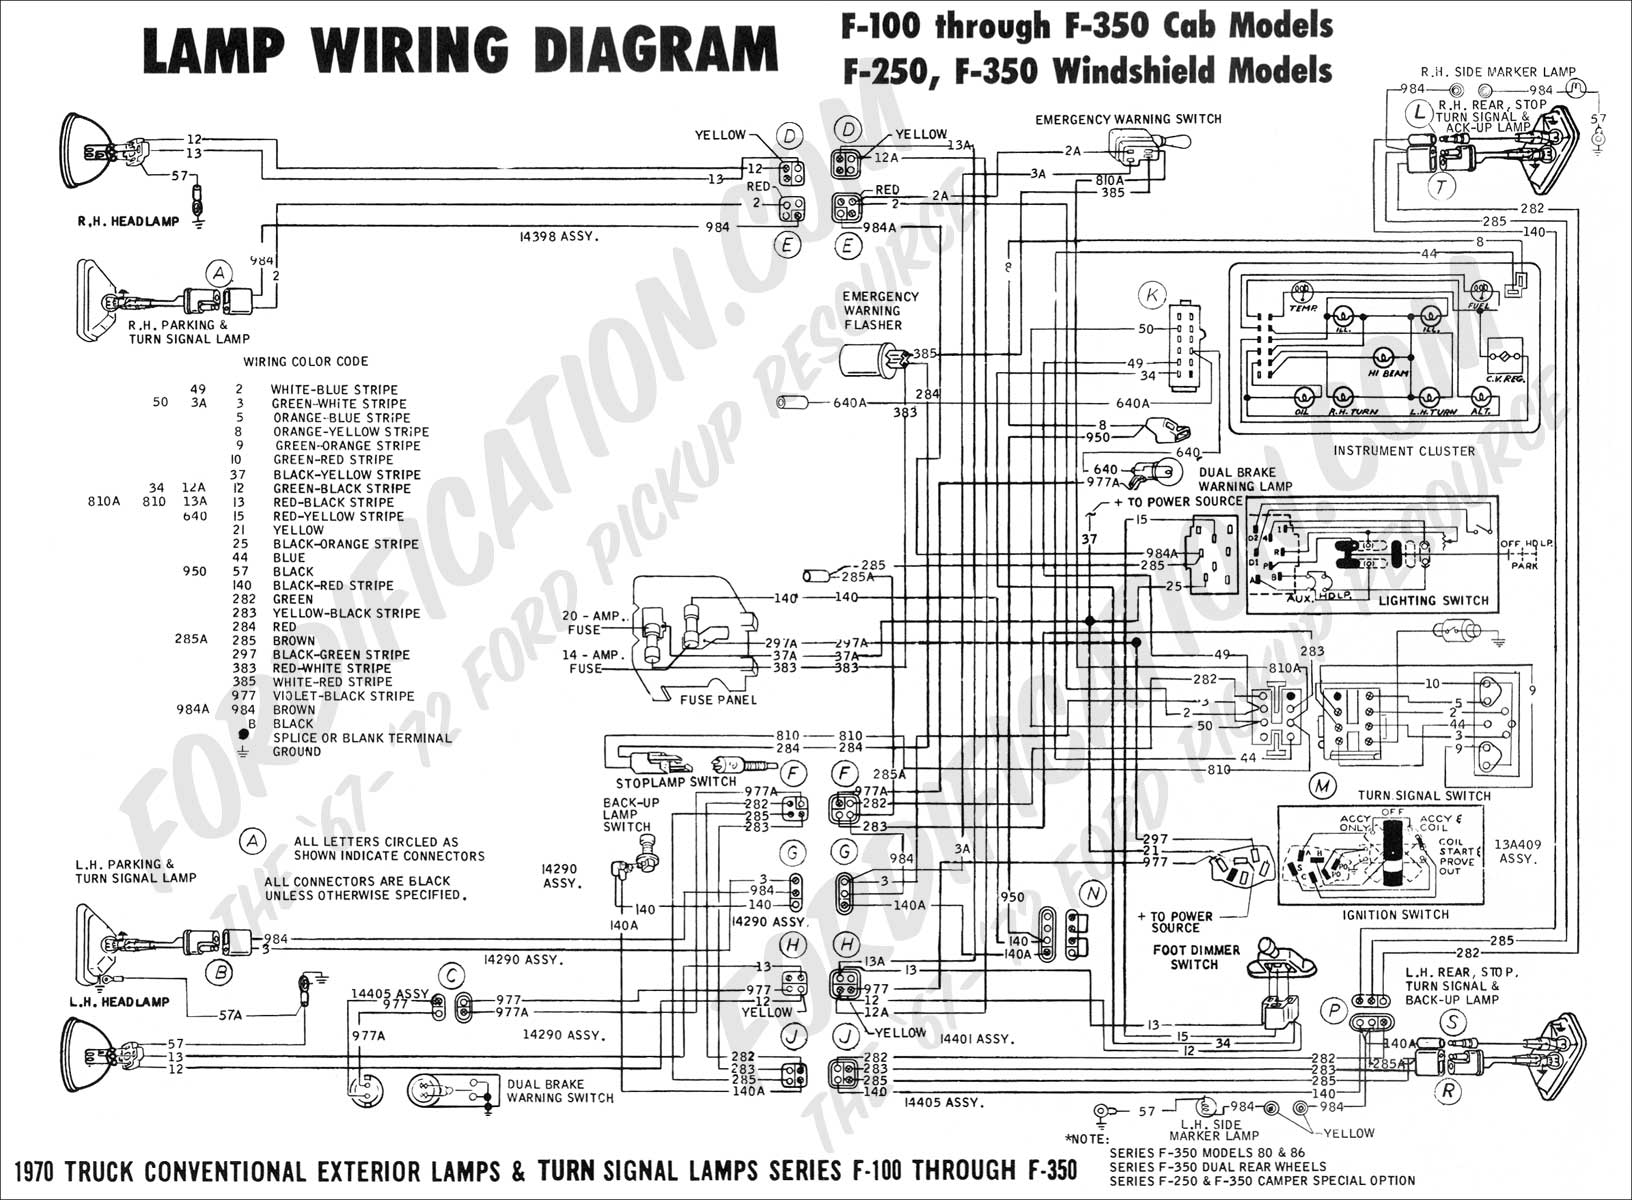 P 0900c152800ad9ee furthermore 54w8d Toyota Avalon 2001 Toyota Avalon Wont Start together with P0320 in addition 1291890 Turn Signal Cam Wiring moreover 2002 Derbi Gpr 50cc Electrical System Wiring Diagram. on mitsubishi montero sport dash light fuse